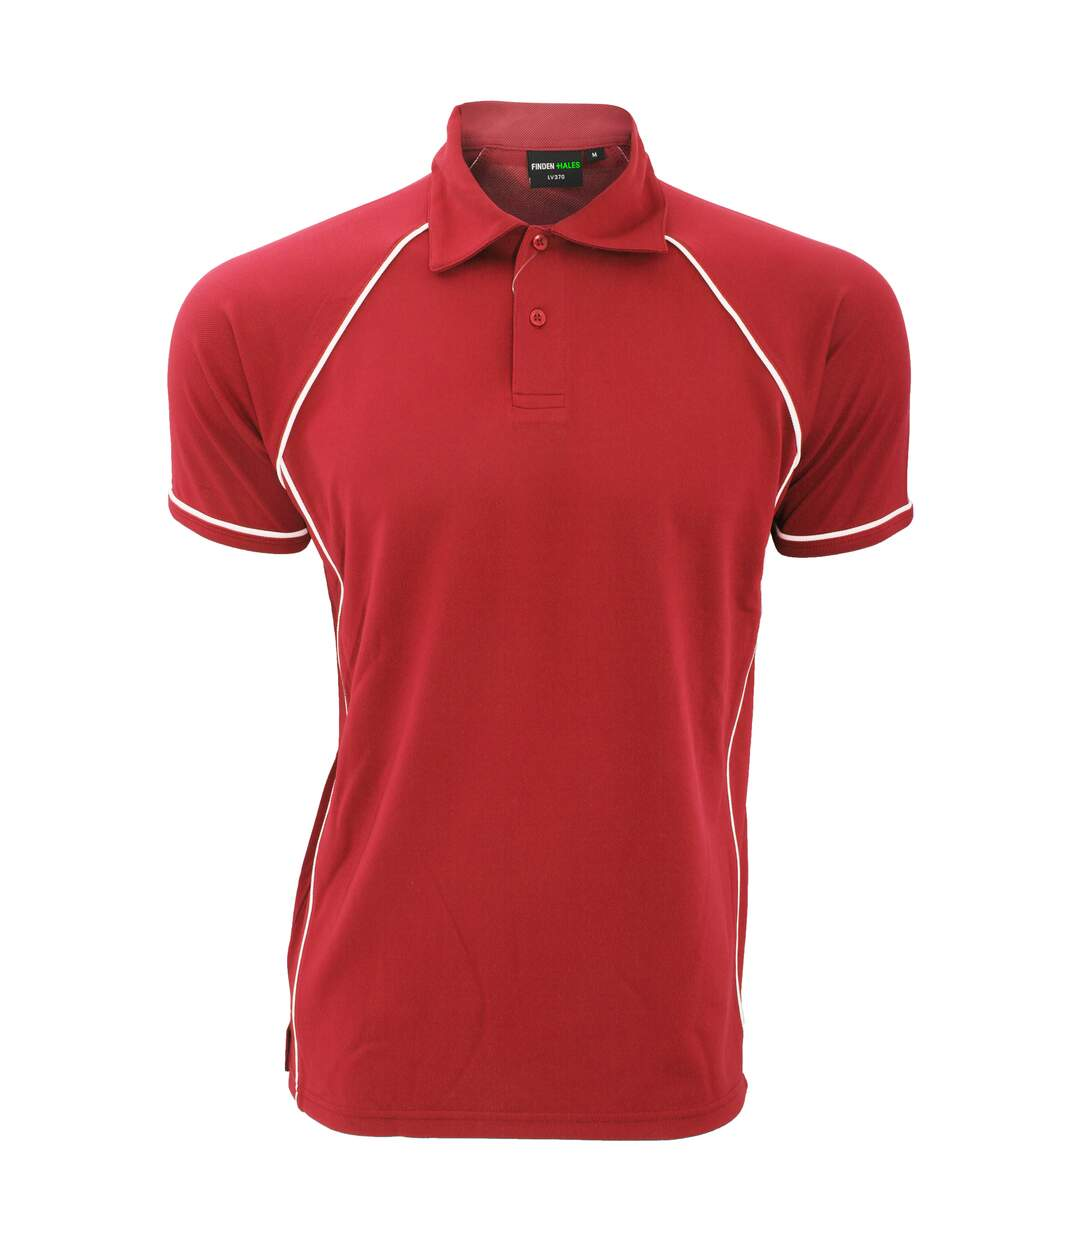 Finden & Hales Mens Piped Performance Sports Polo Shirt (Red/White) - UTRW427